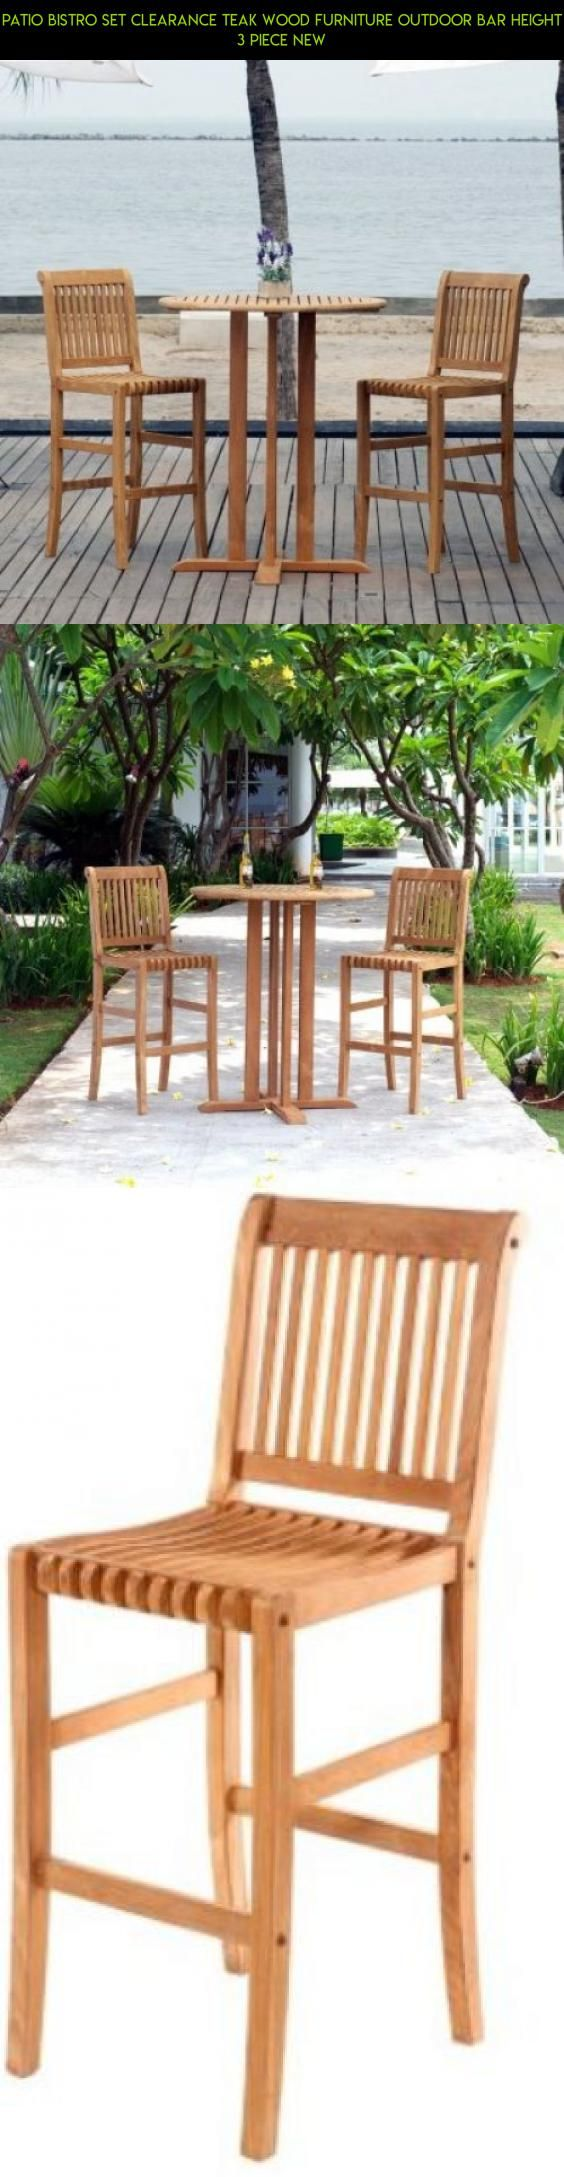 Best 25+ Clearance Outdoor Furniture Ideas On Pinterest | Outdoor Cushions  Clearance, Diy Outdoor Table And Outdoor Tables